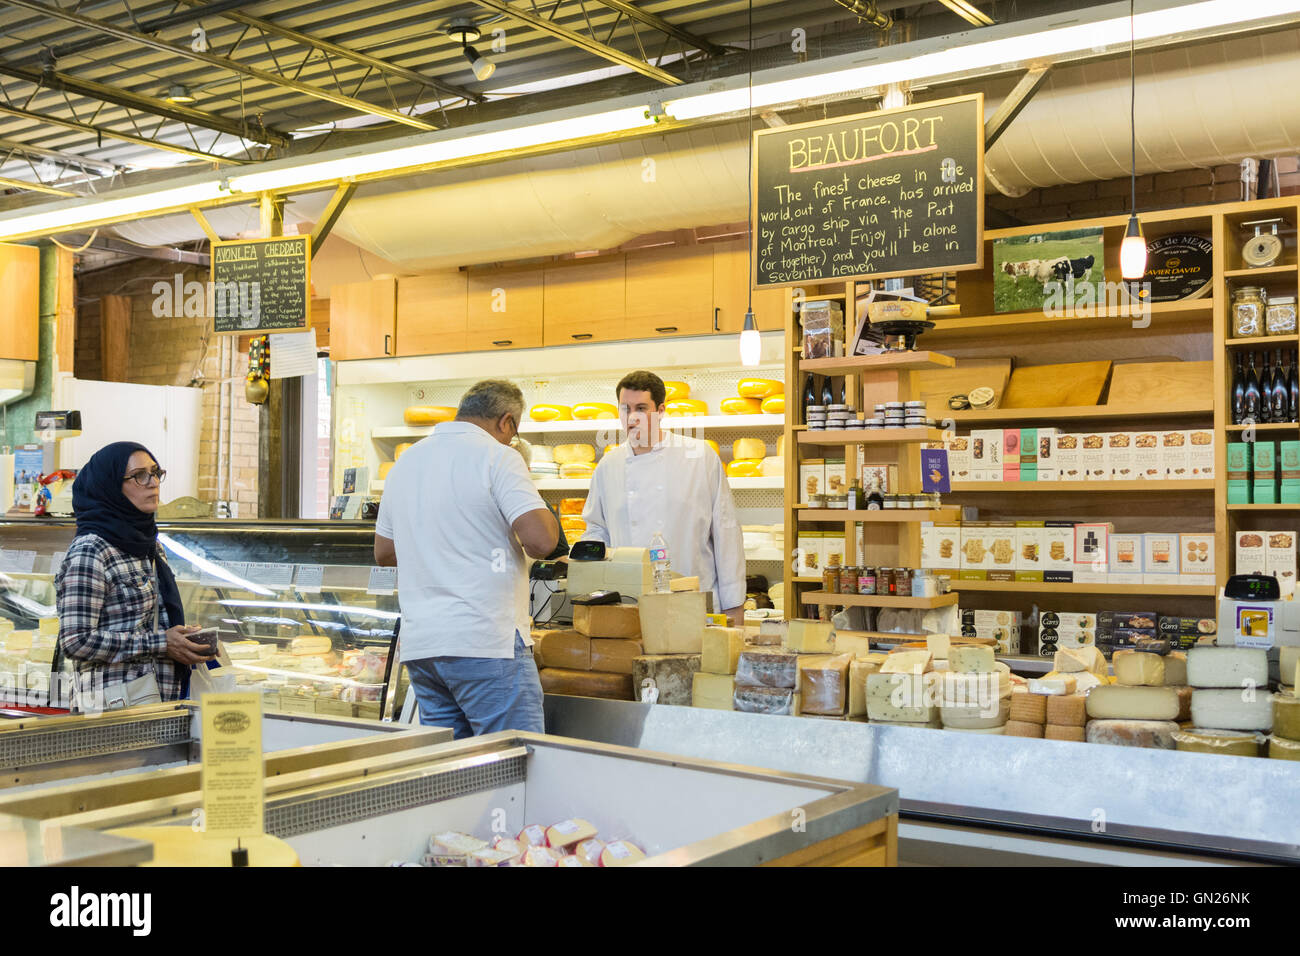 St Lawrence Market, Toronto, Canada - cheese stall - Stock Image